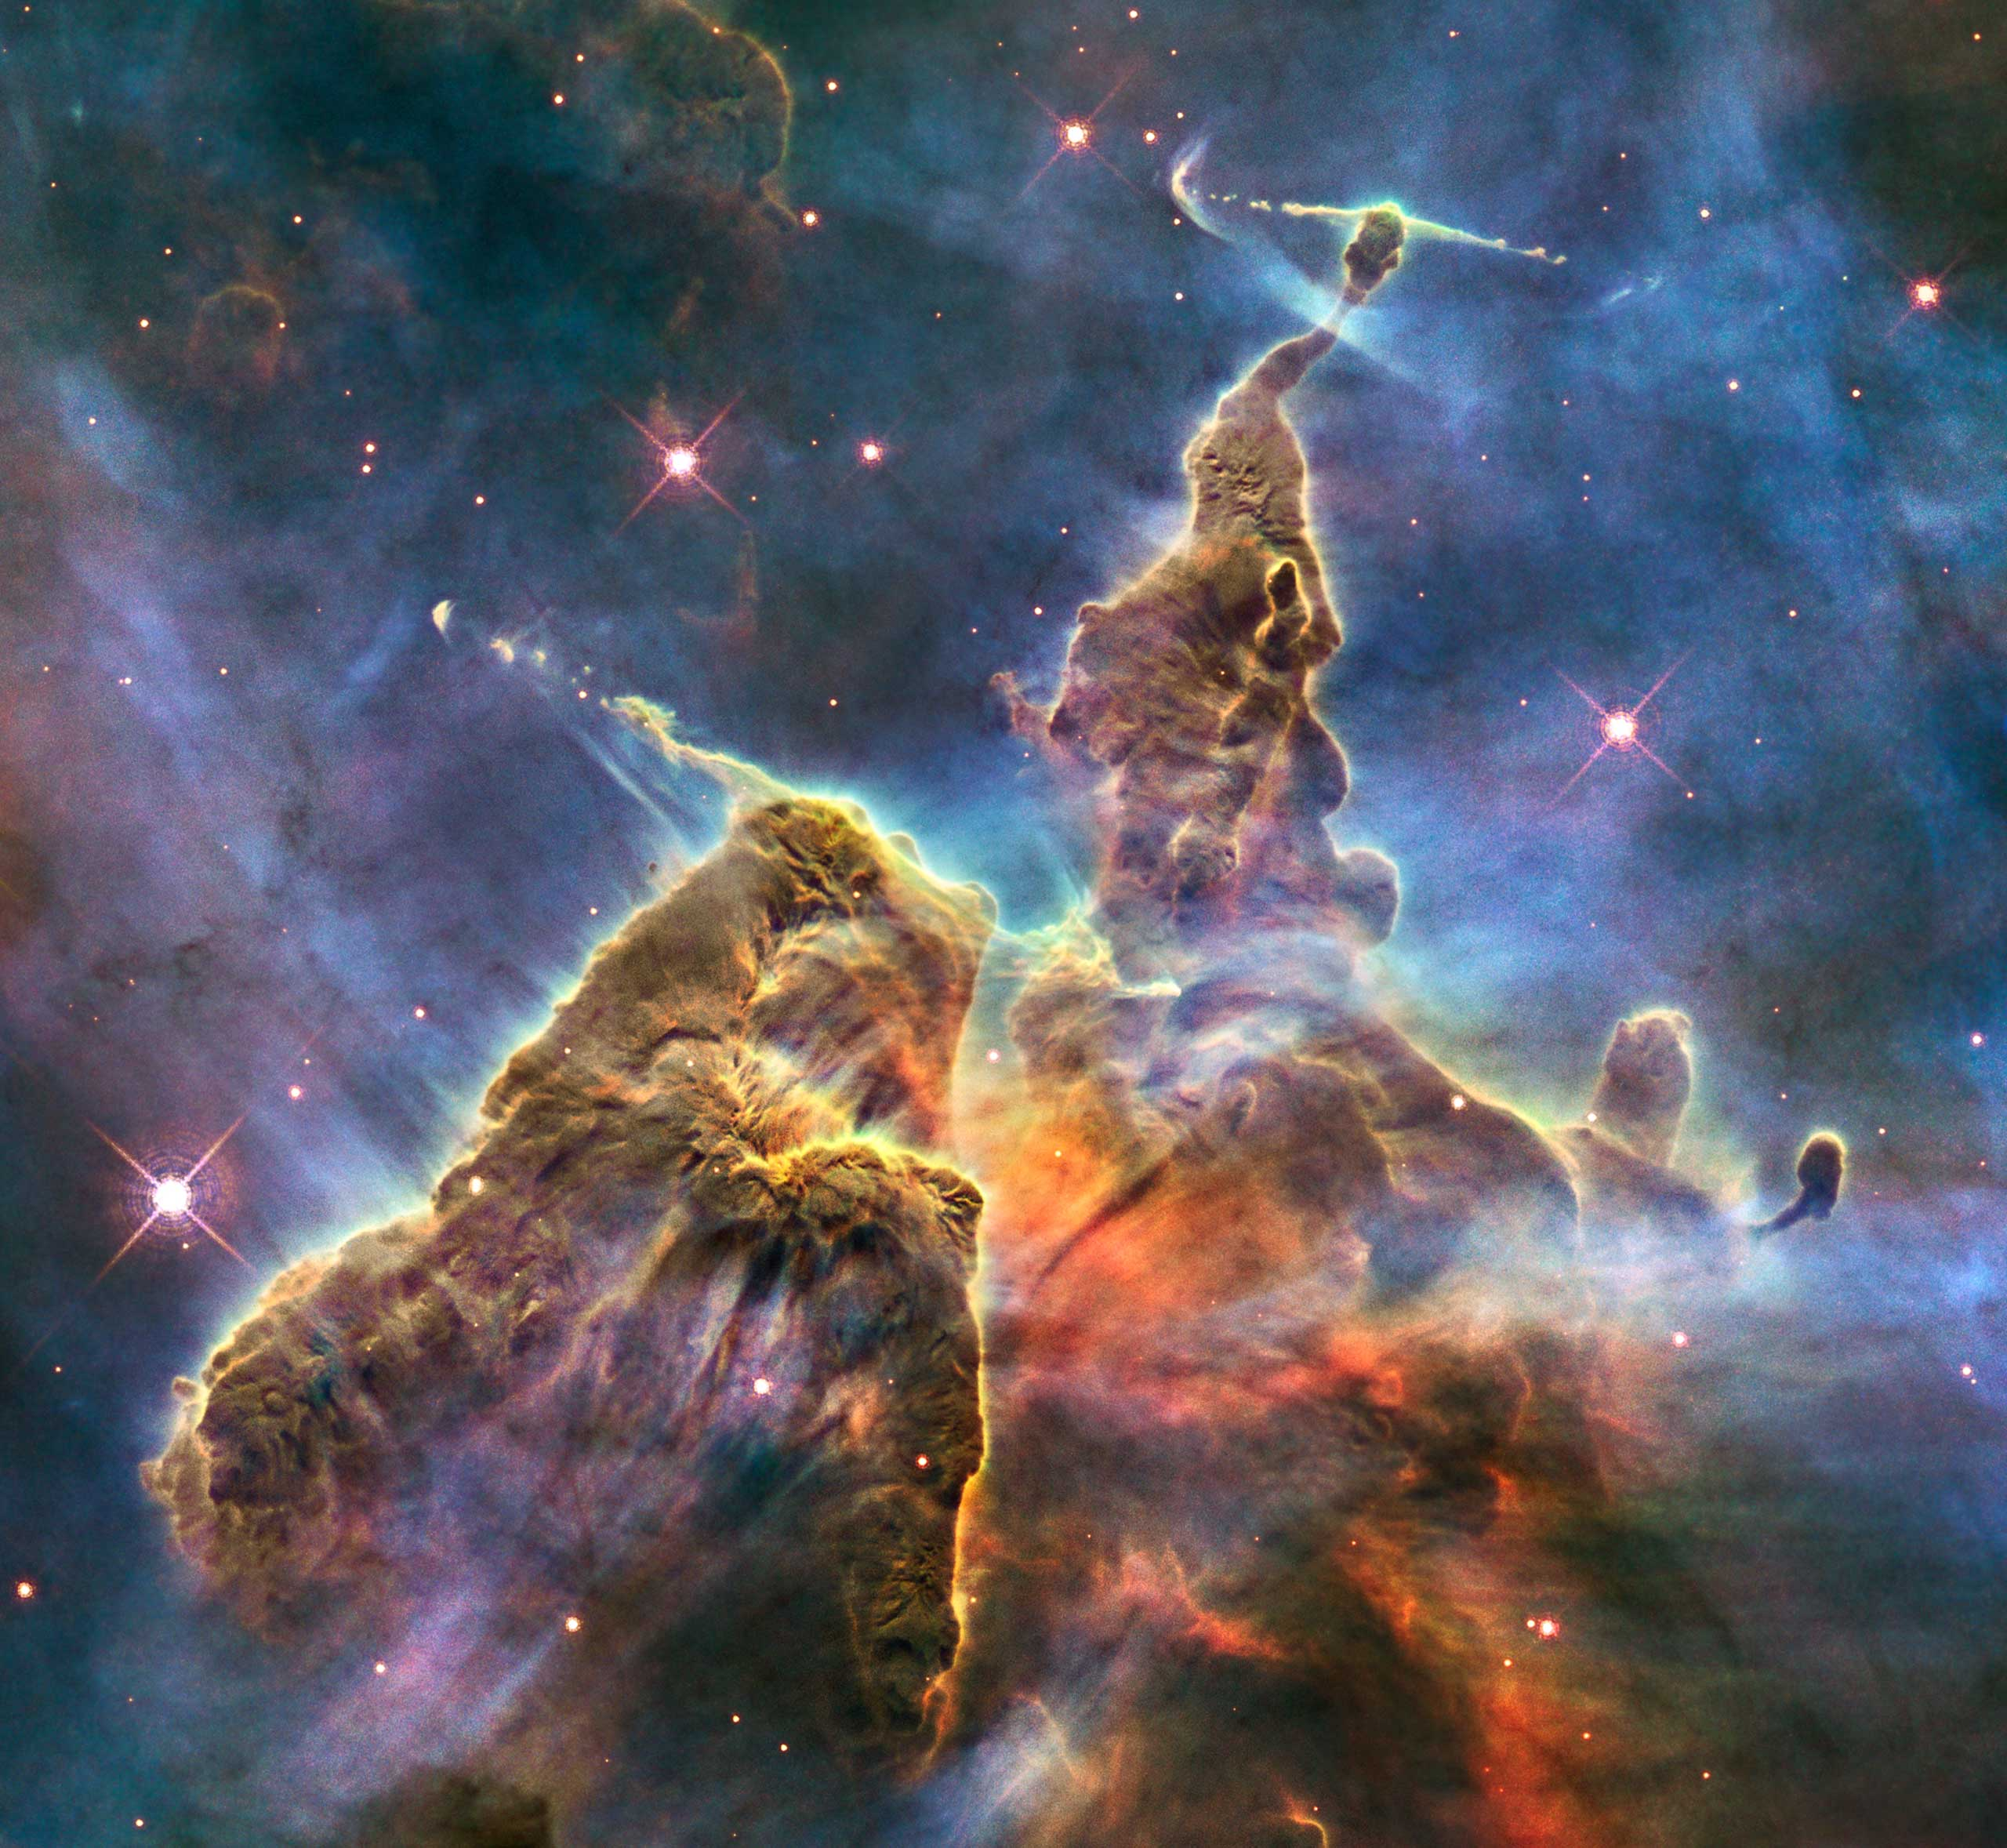 Mystic Mountain:                                                              This image captures the chaotic activity atop a three-light-year-tall pillar of gas and dust that is being eaten away by the brilliant light from nearby bright stars. The pillar is also being assaulted from within, as infant stars buried inside it fire off jets of gas that can be seen streaming from towering peaks. This turbulent cosmic pinnacle lies within the Carina Nebula, located 7,500 light-years away in the southern constellation Carina.                                                               Image released on April 22, 2010